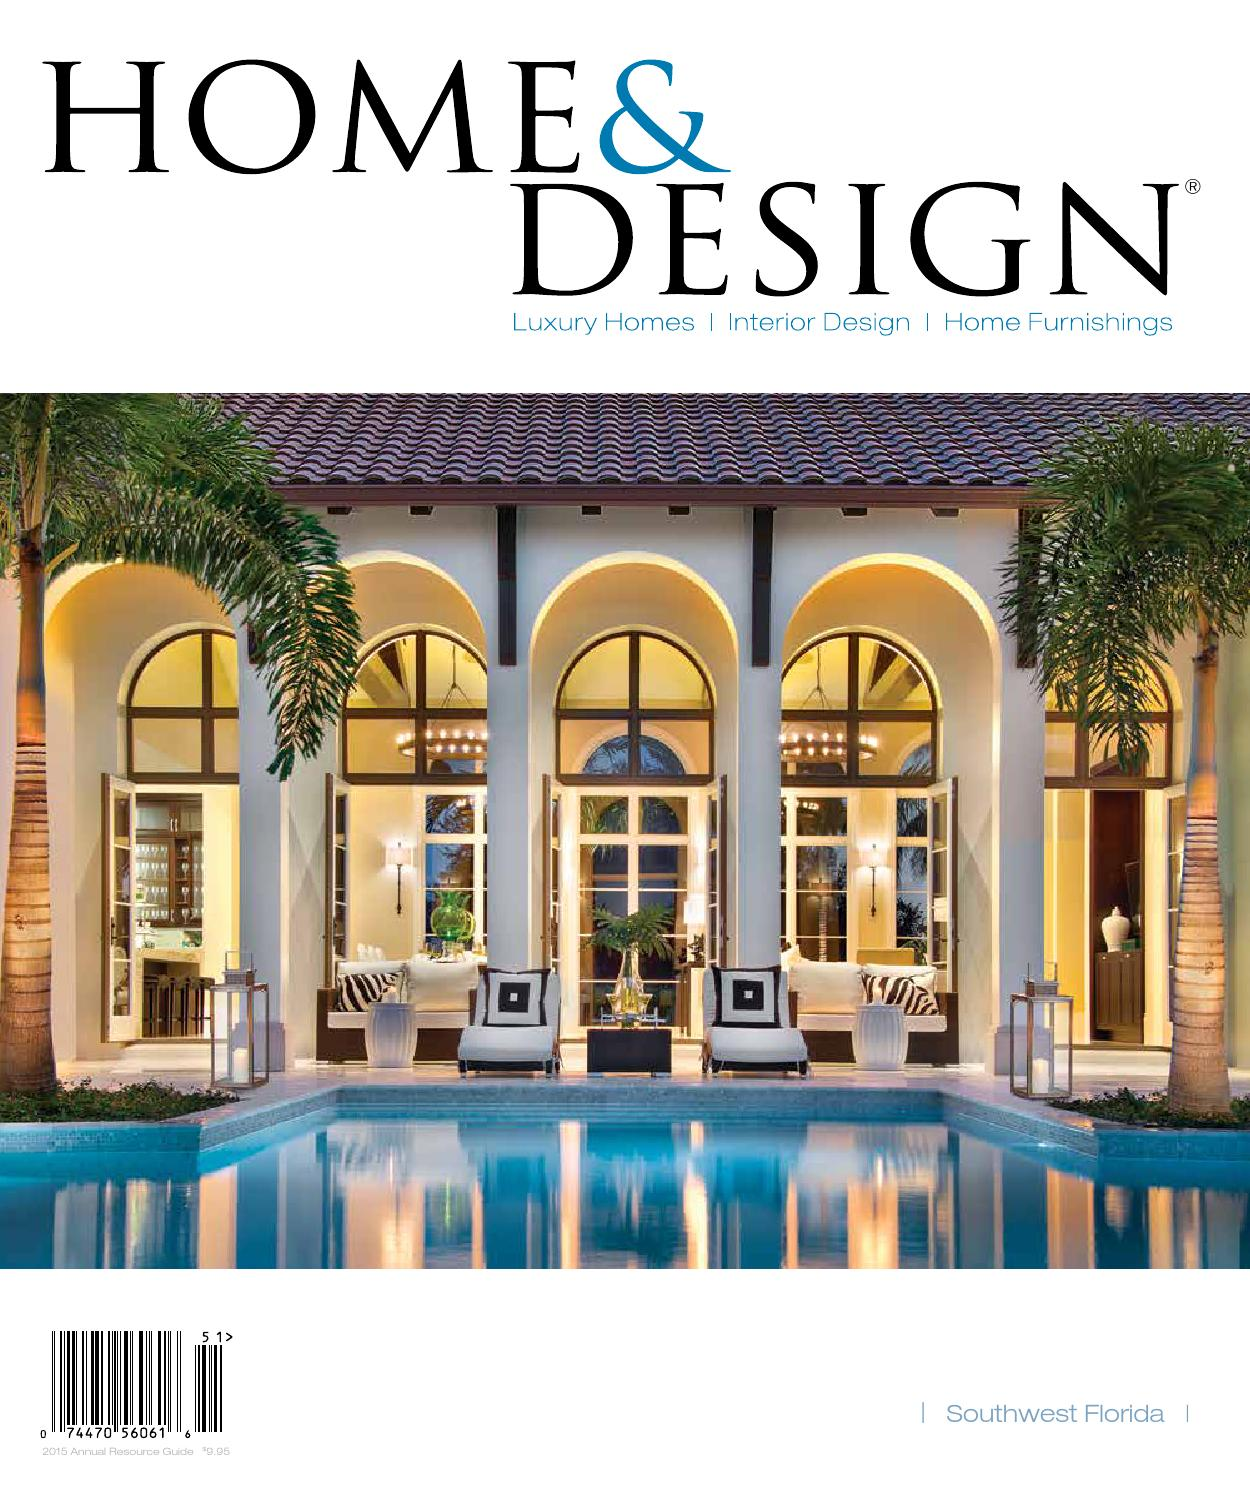 home design magazine annual resource guide 2015 southwest